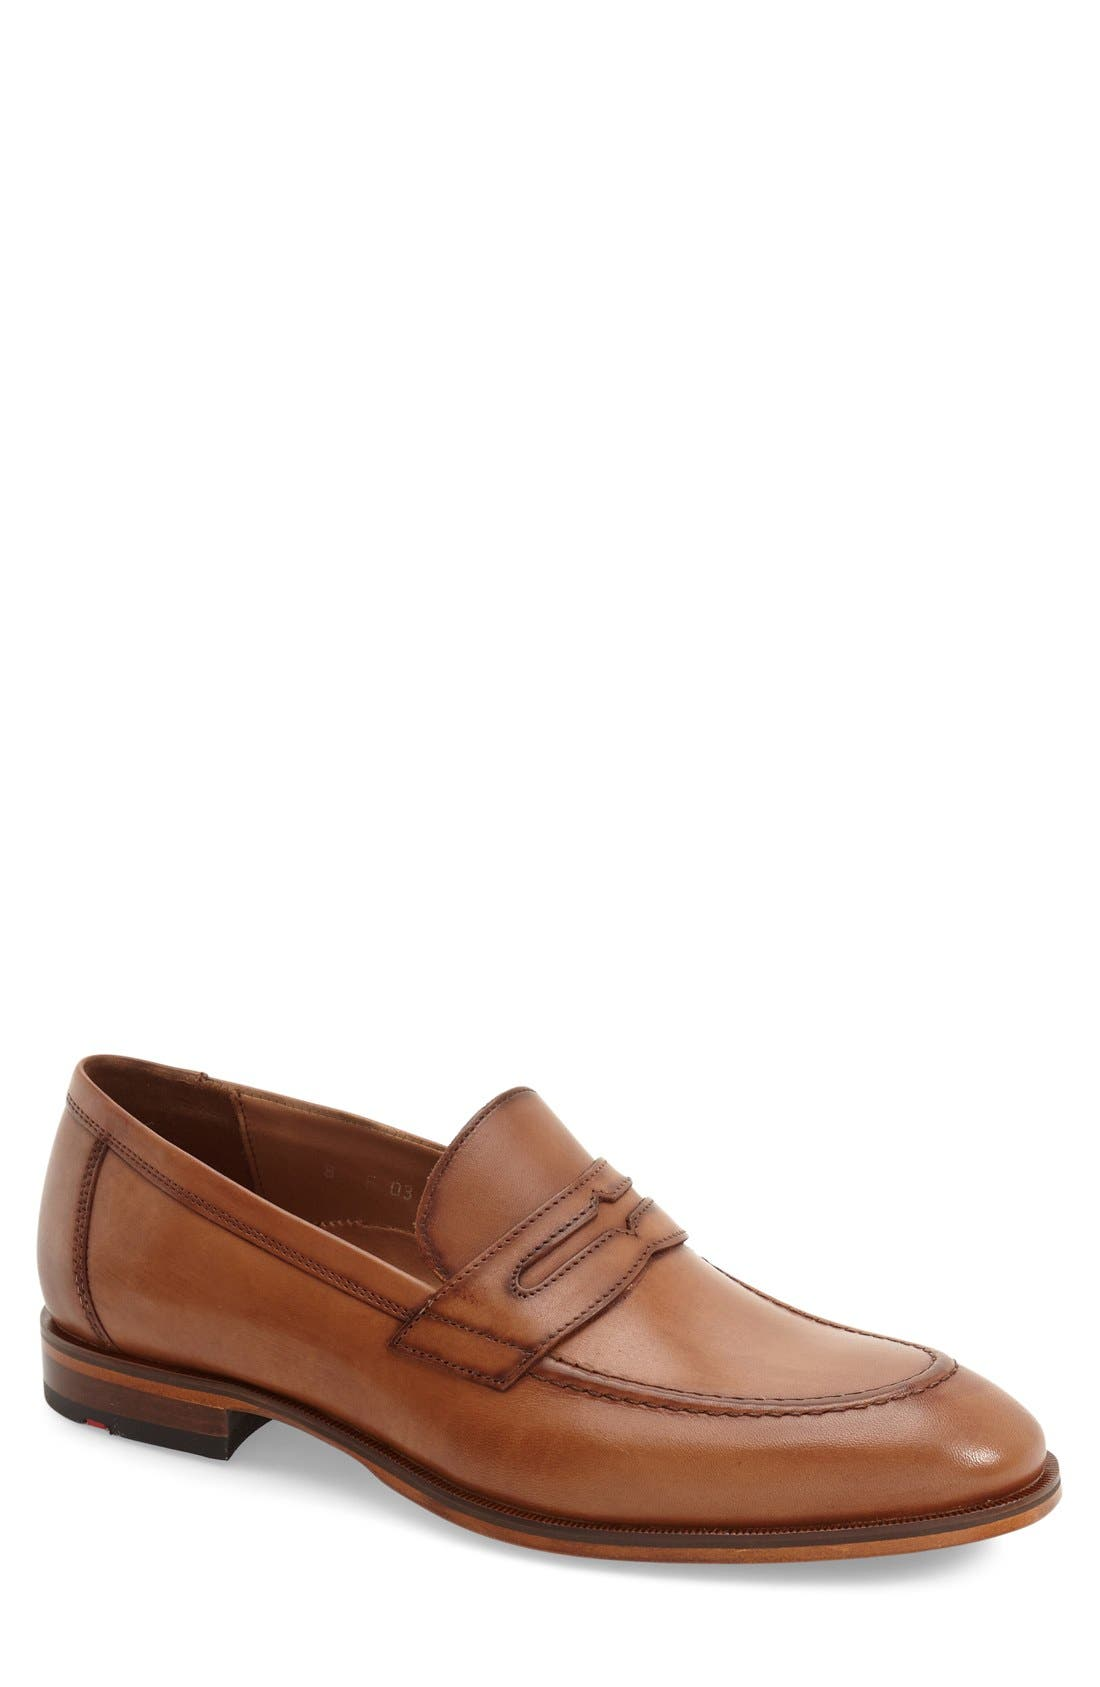 'Pete' Penny Loafer,                         Main,                         color, COGNAC